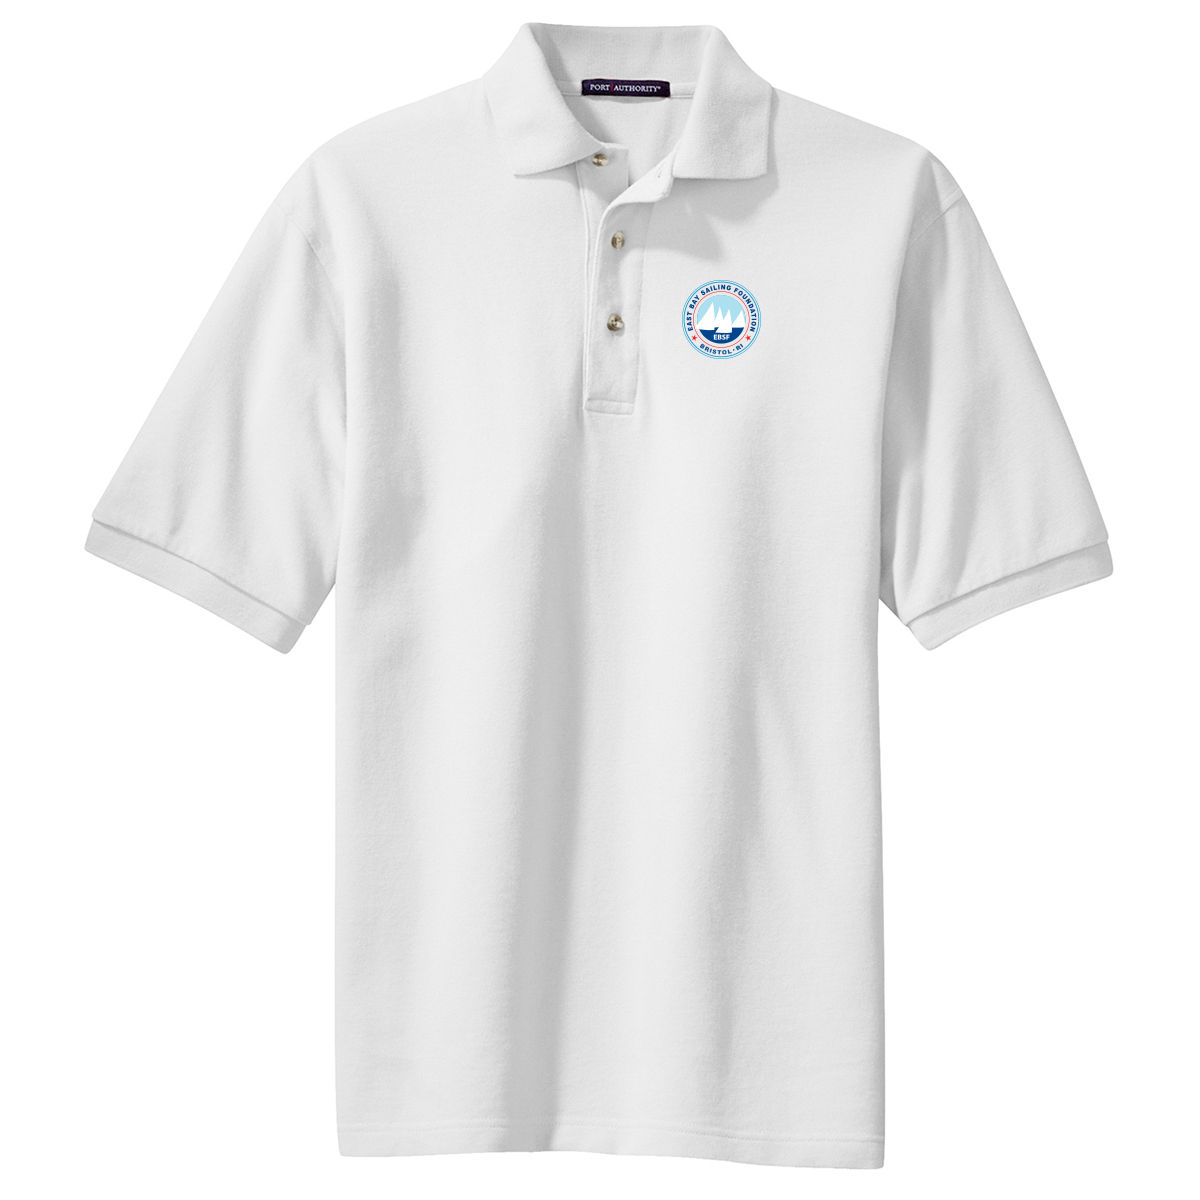 East Bay Sailing Foundation - Men's Cotton Polo